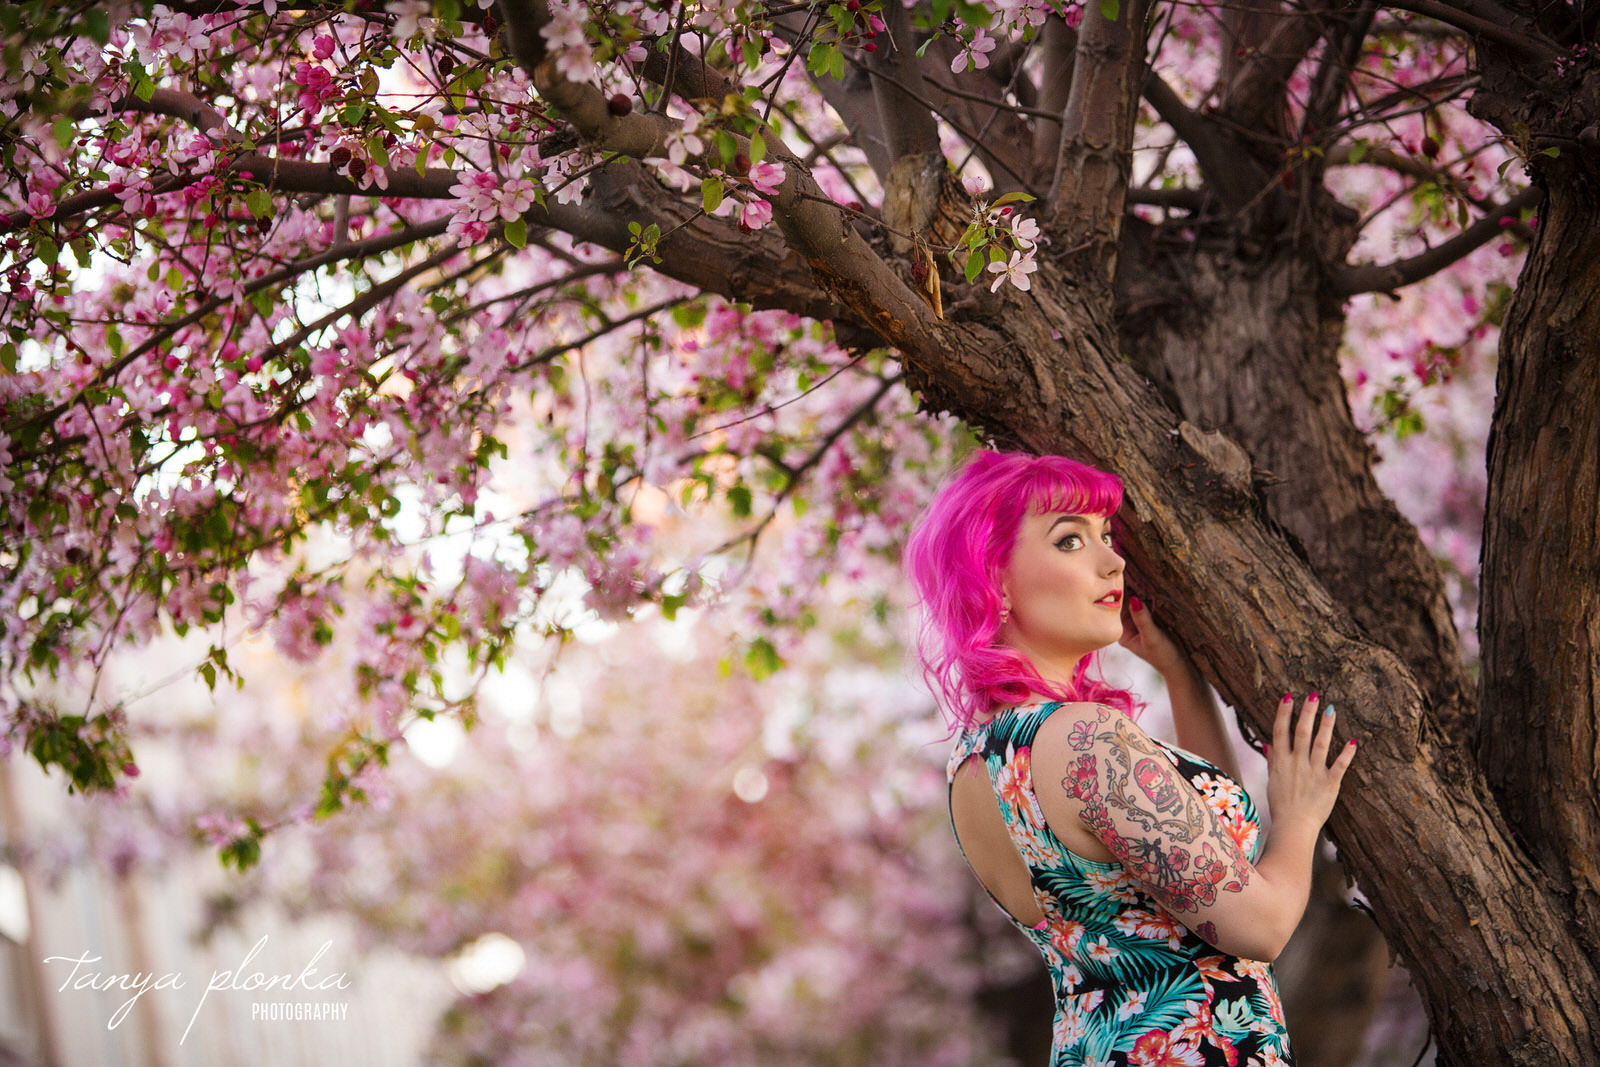 woman with pink hair leans against tree with pink spring blossoms